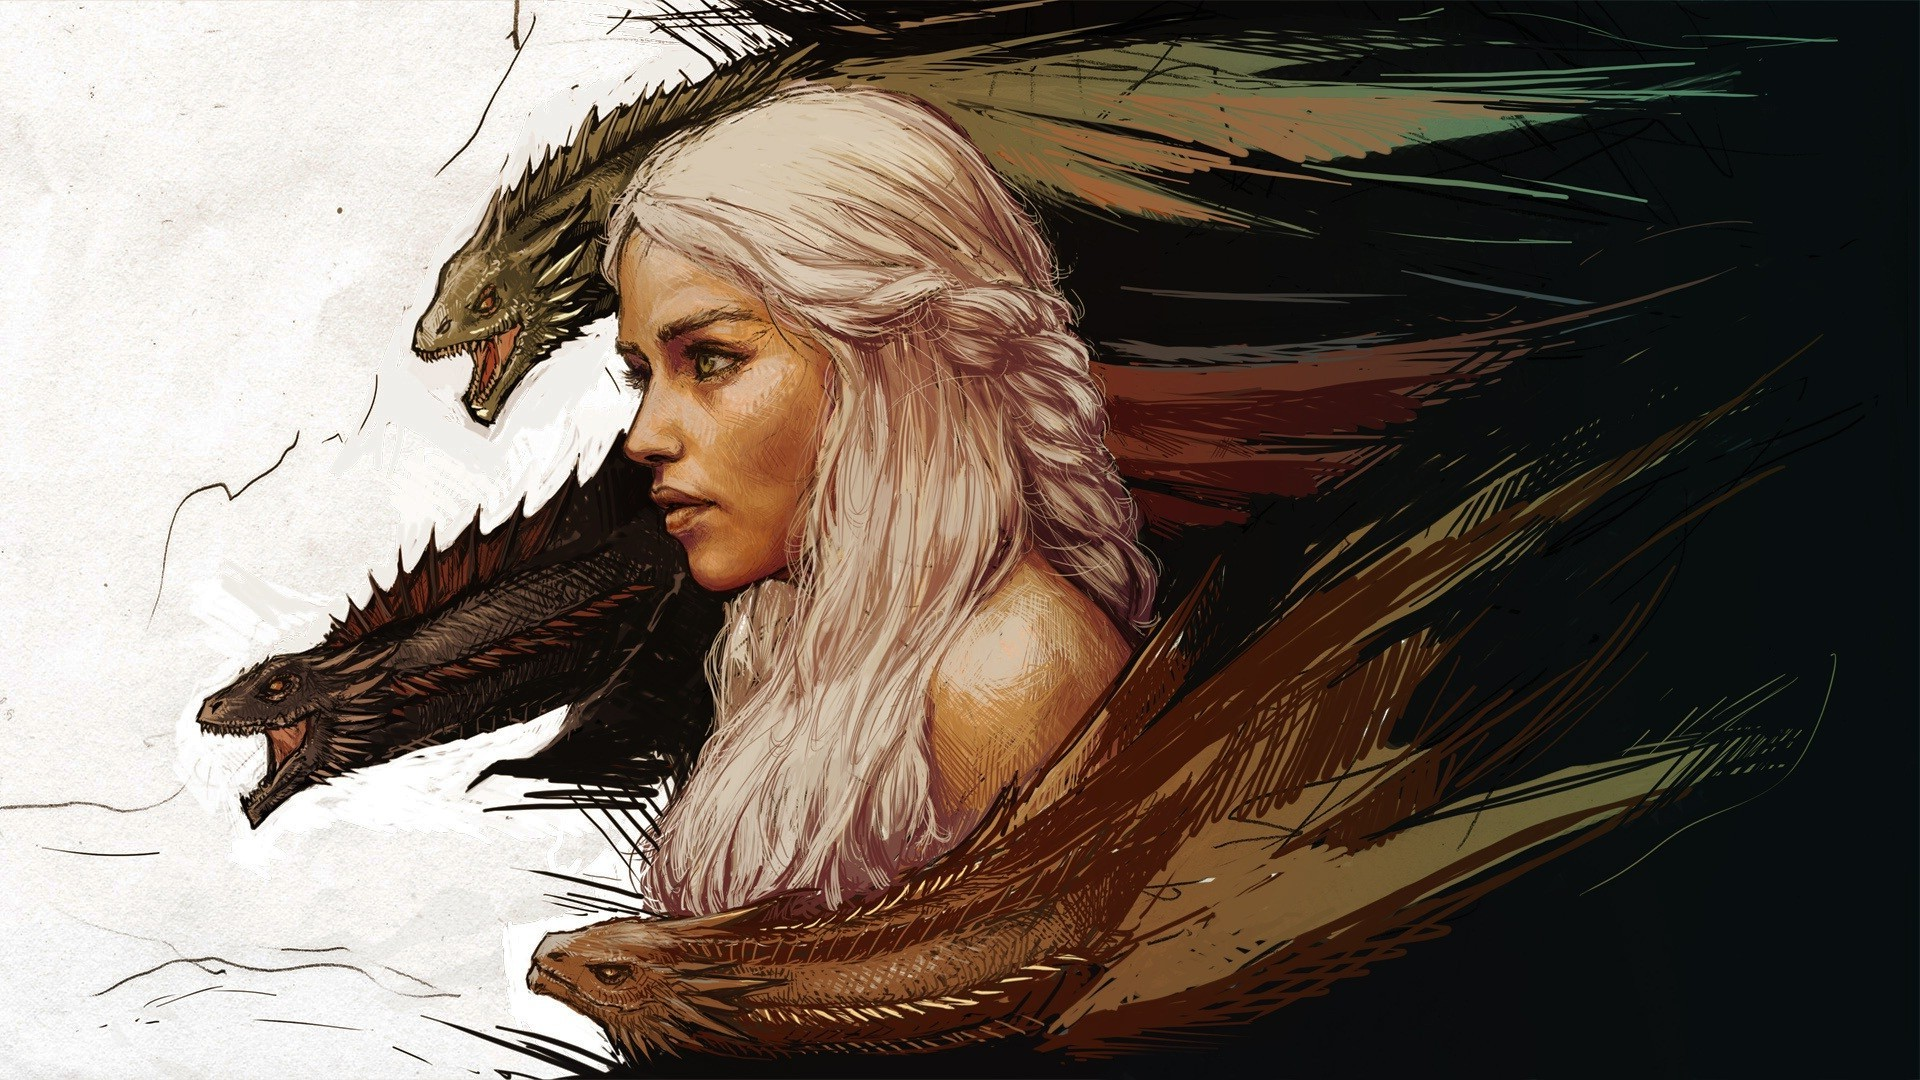 1920x1080 A Song Of Ice And Fire, Anime, White Hair, Daenerys Targaryen, Women,  Dragon, Game Of Thrones Wallpapers HD / Desktop and Mobile Backgrounds